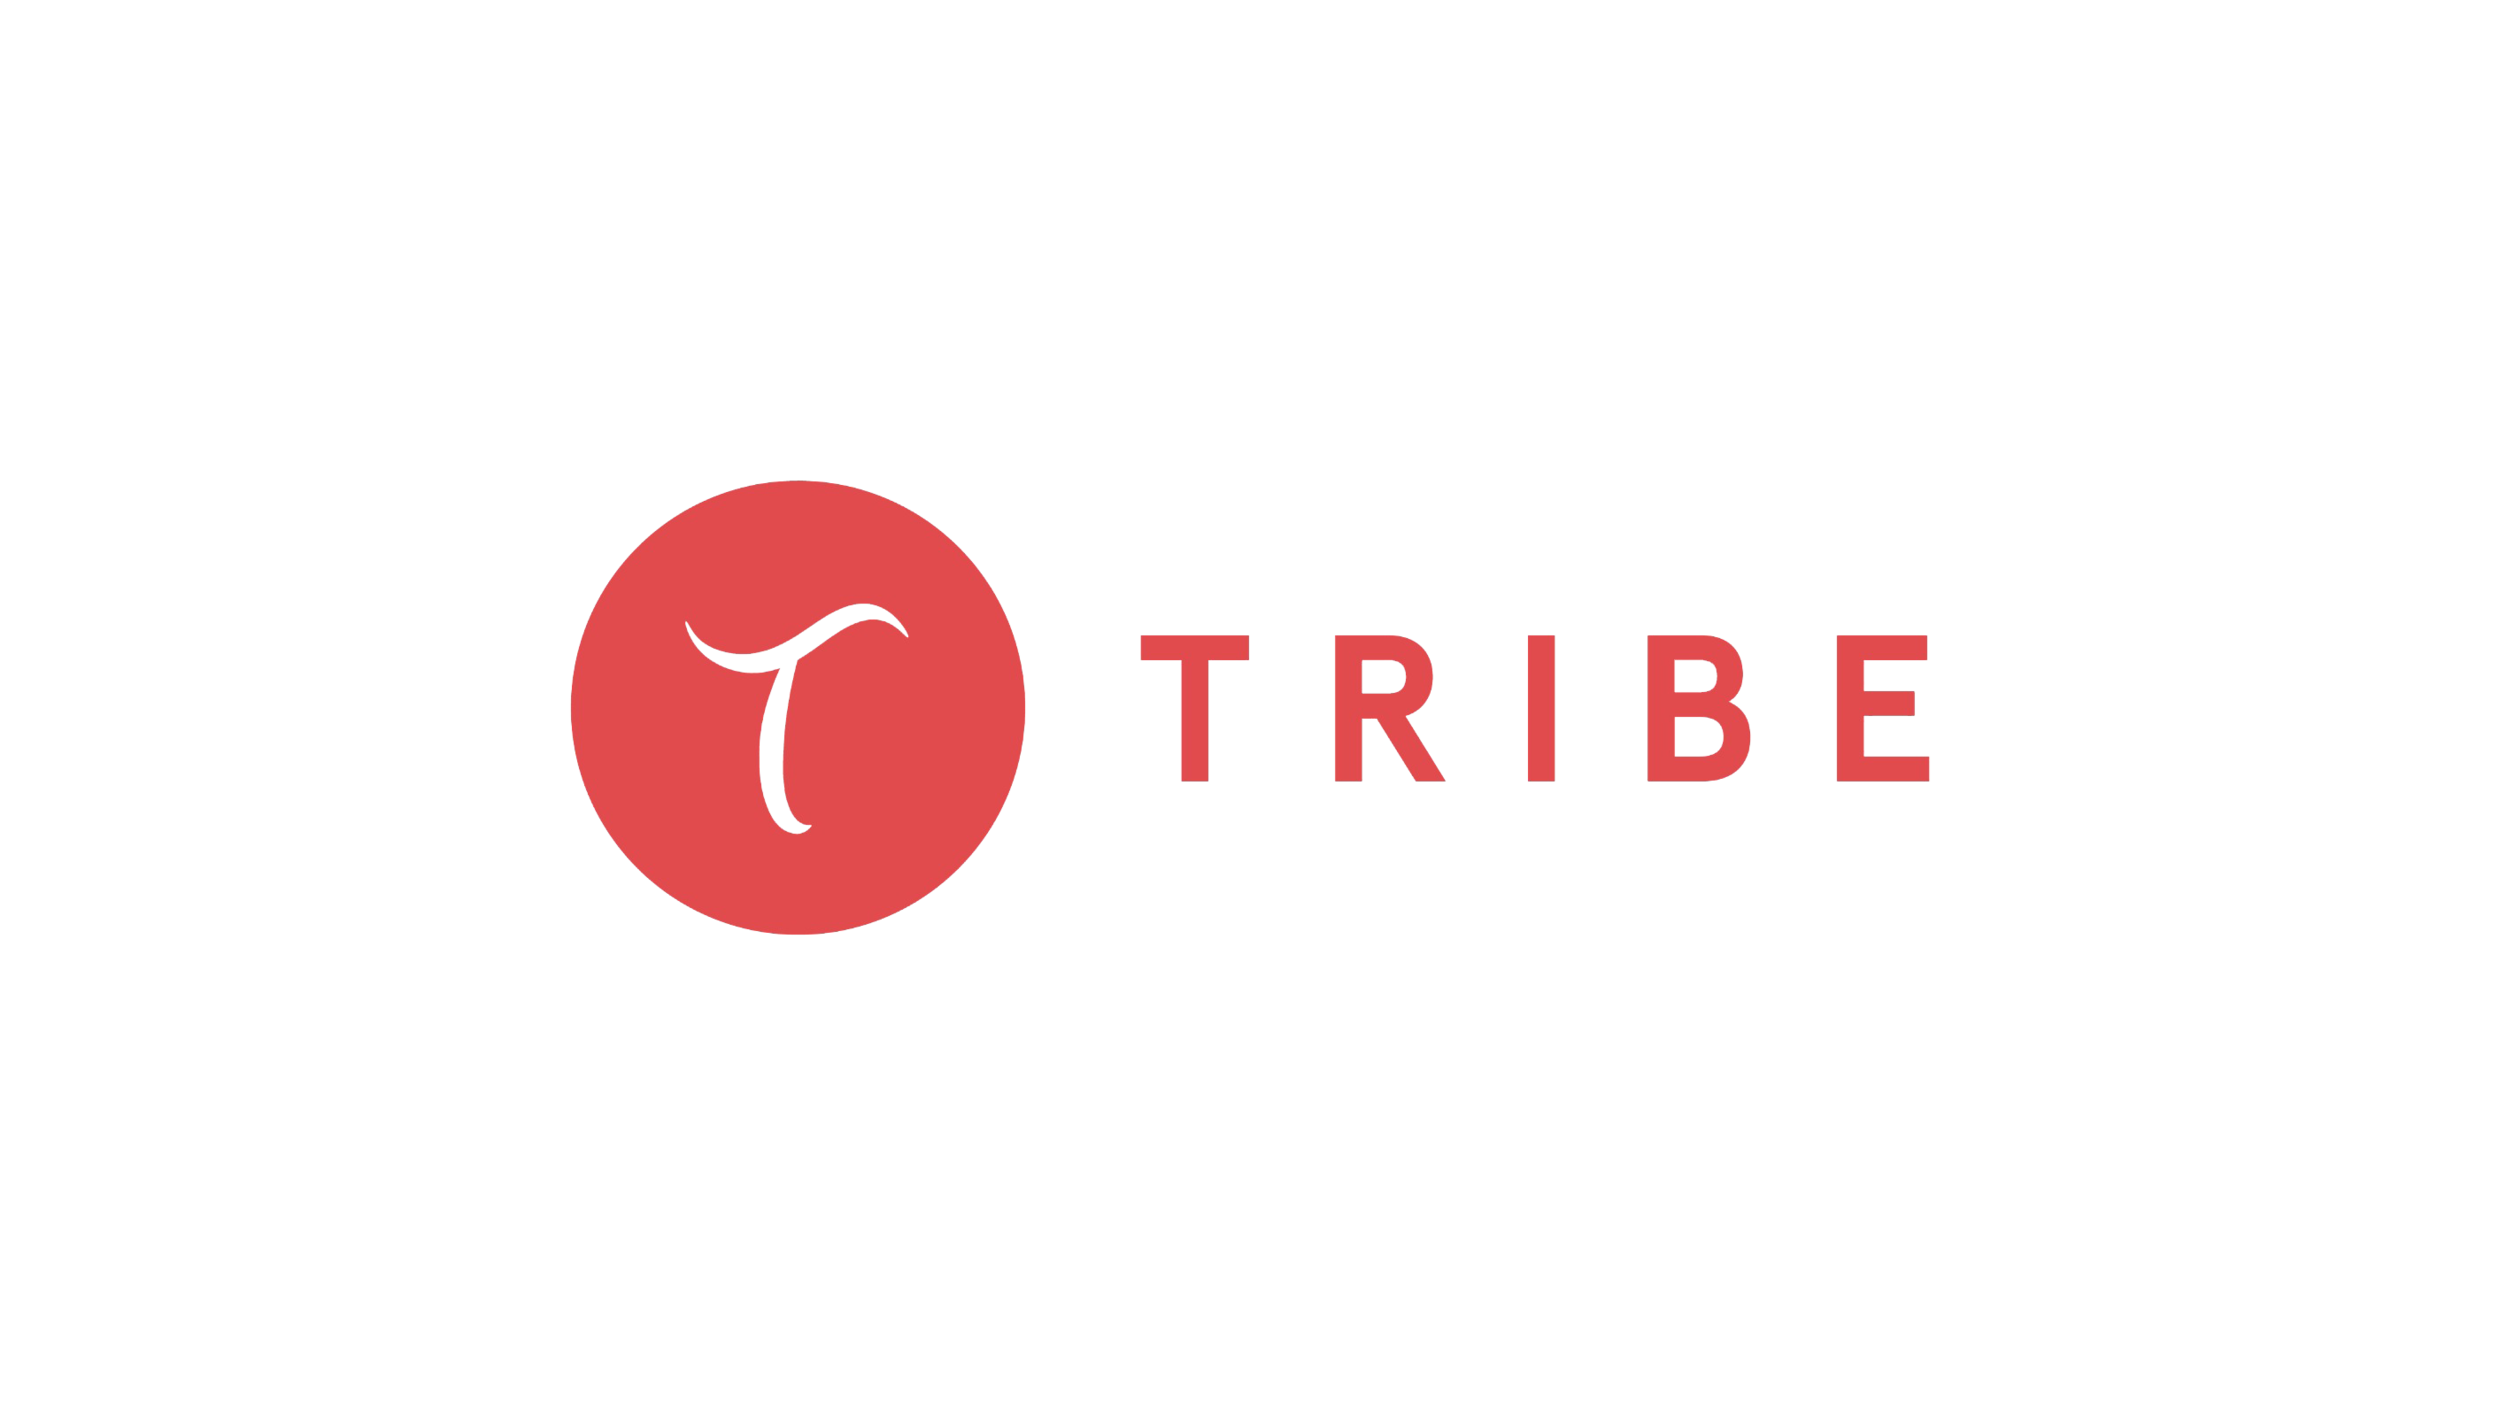 tribe.png